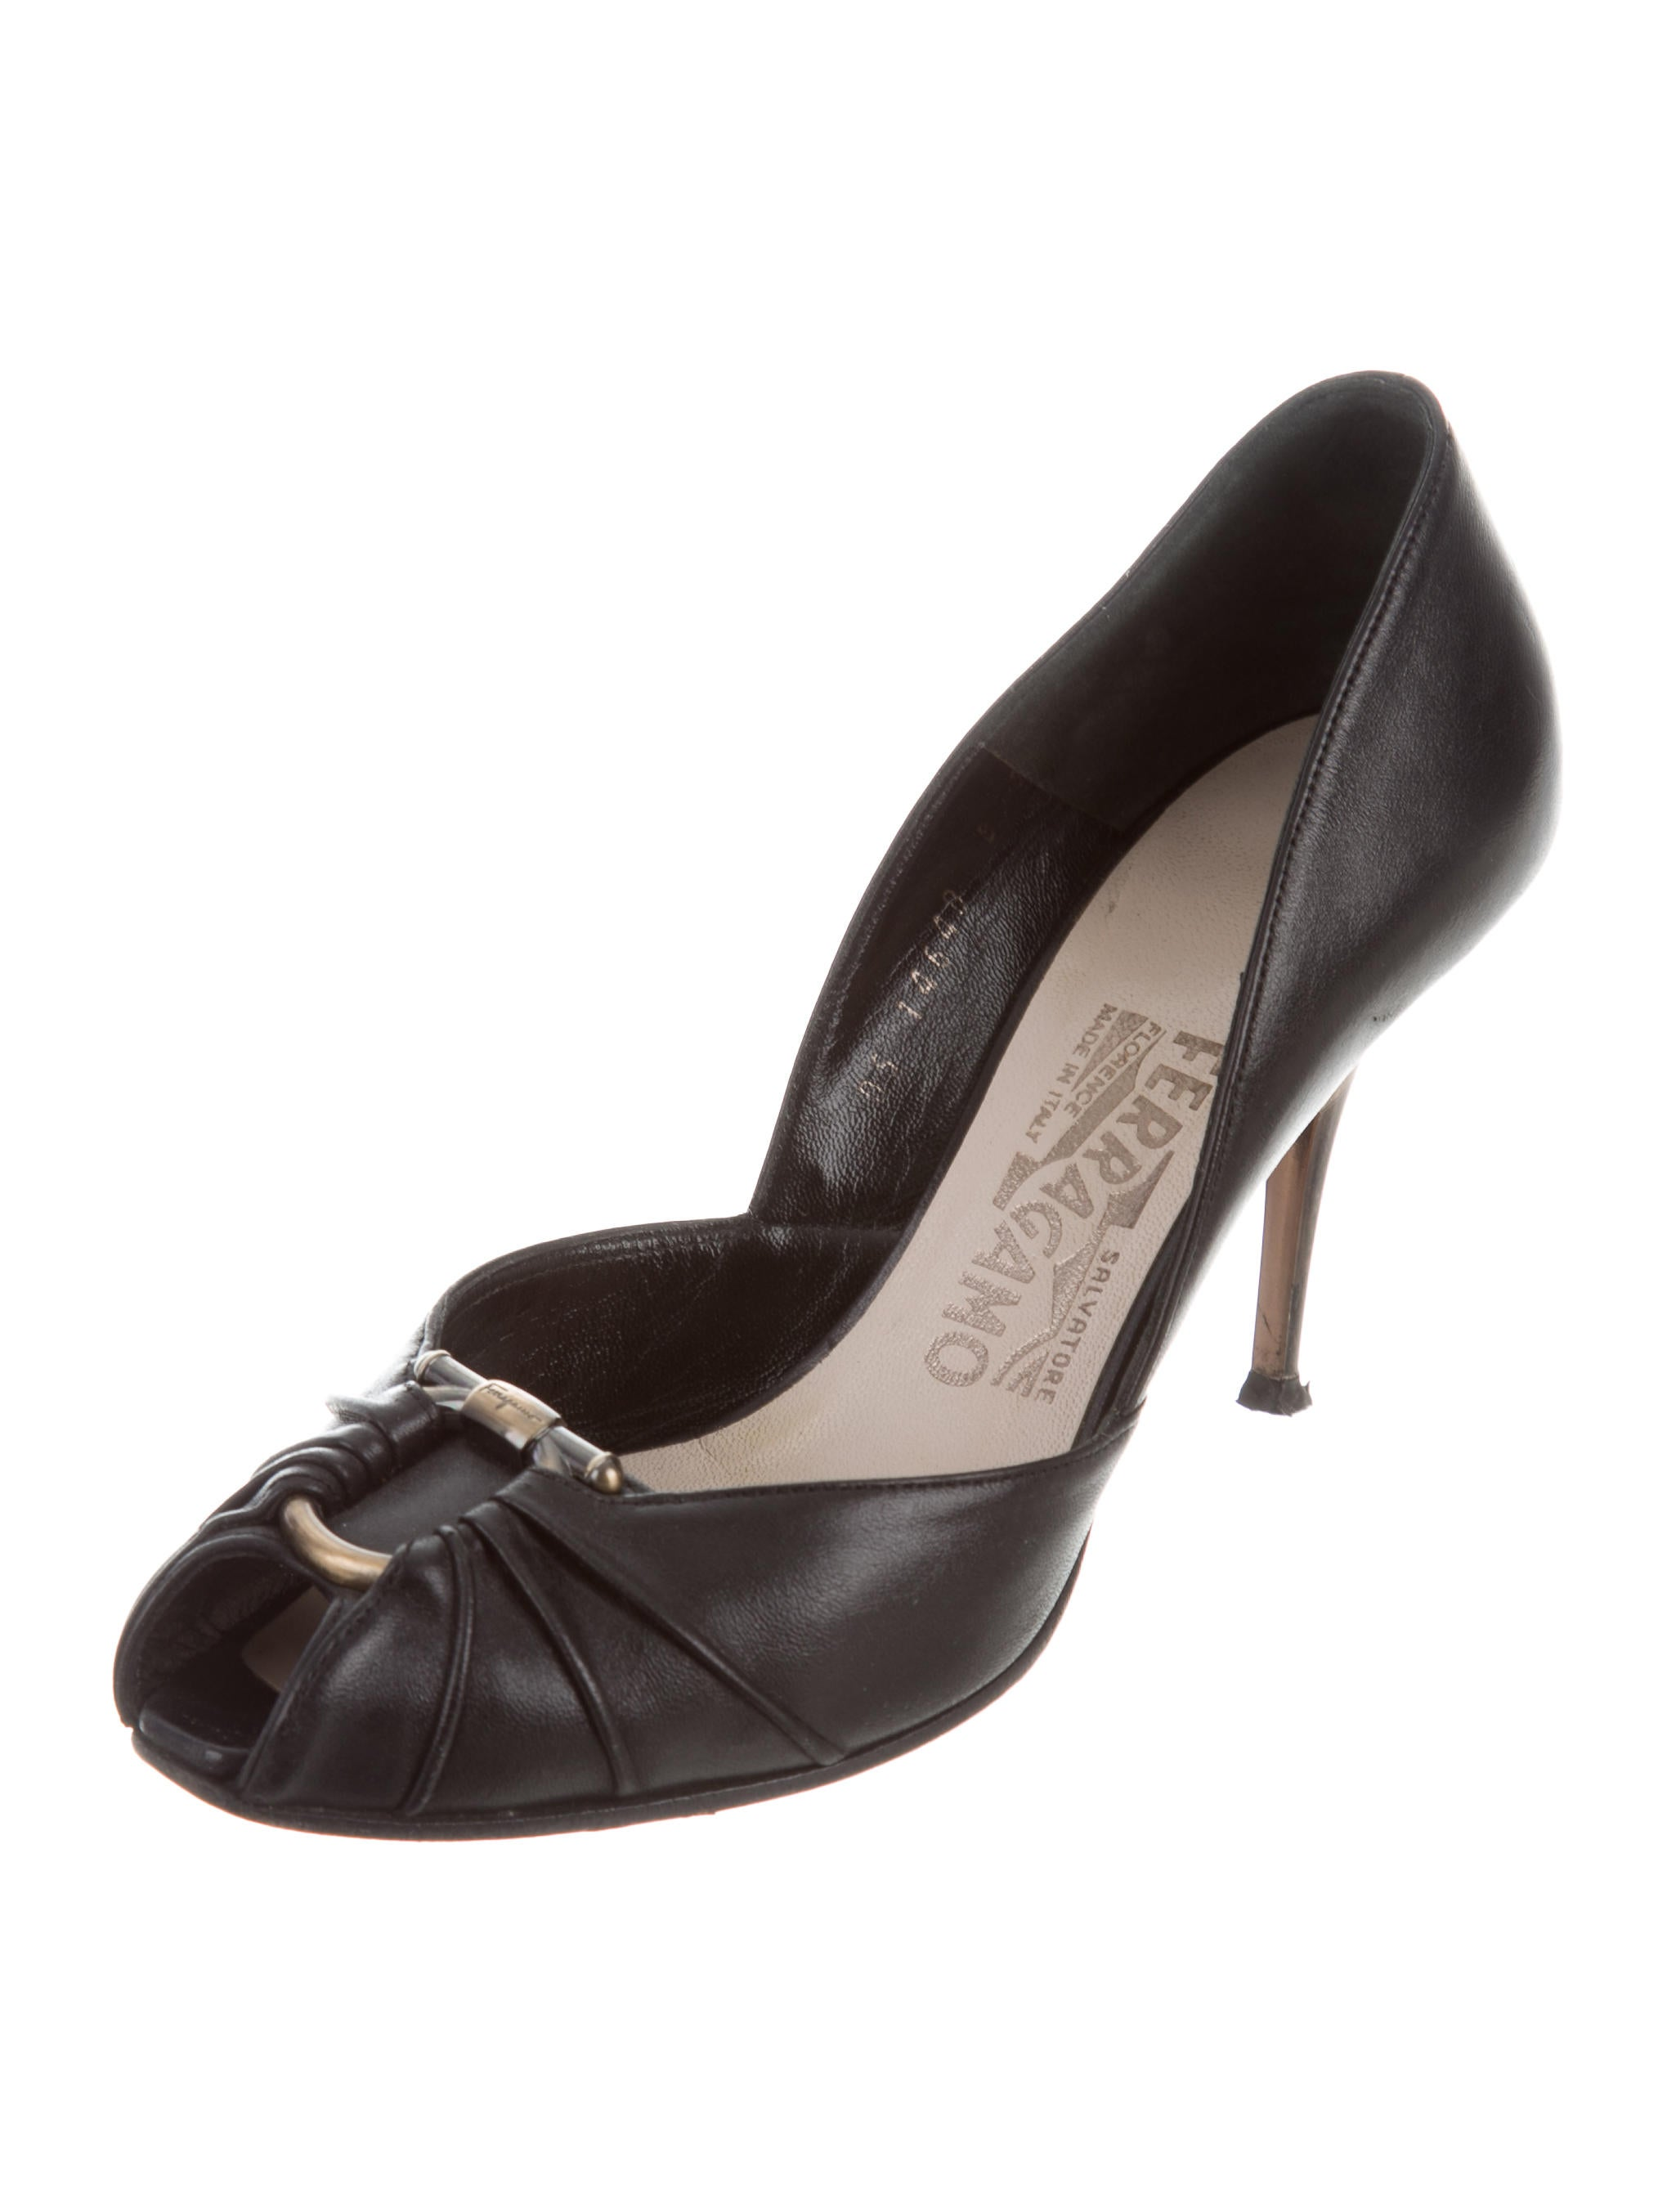 salvatore ferragamo leather peep toe pumps shoes sal49977 the realreal. Black Bedroom Furniture Sets. Home Design Ideas